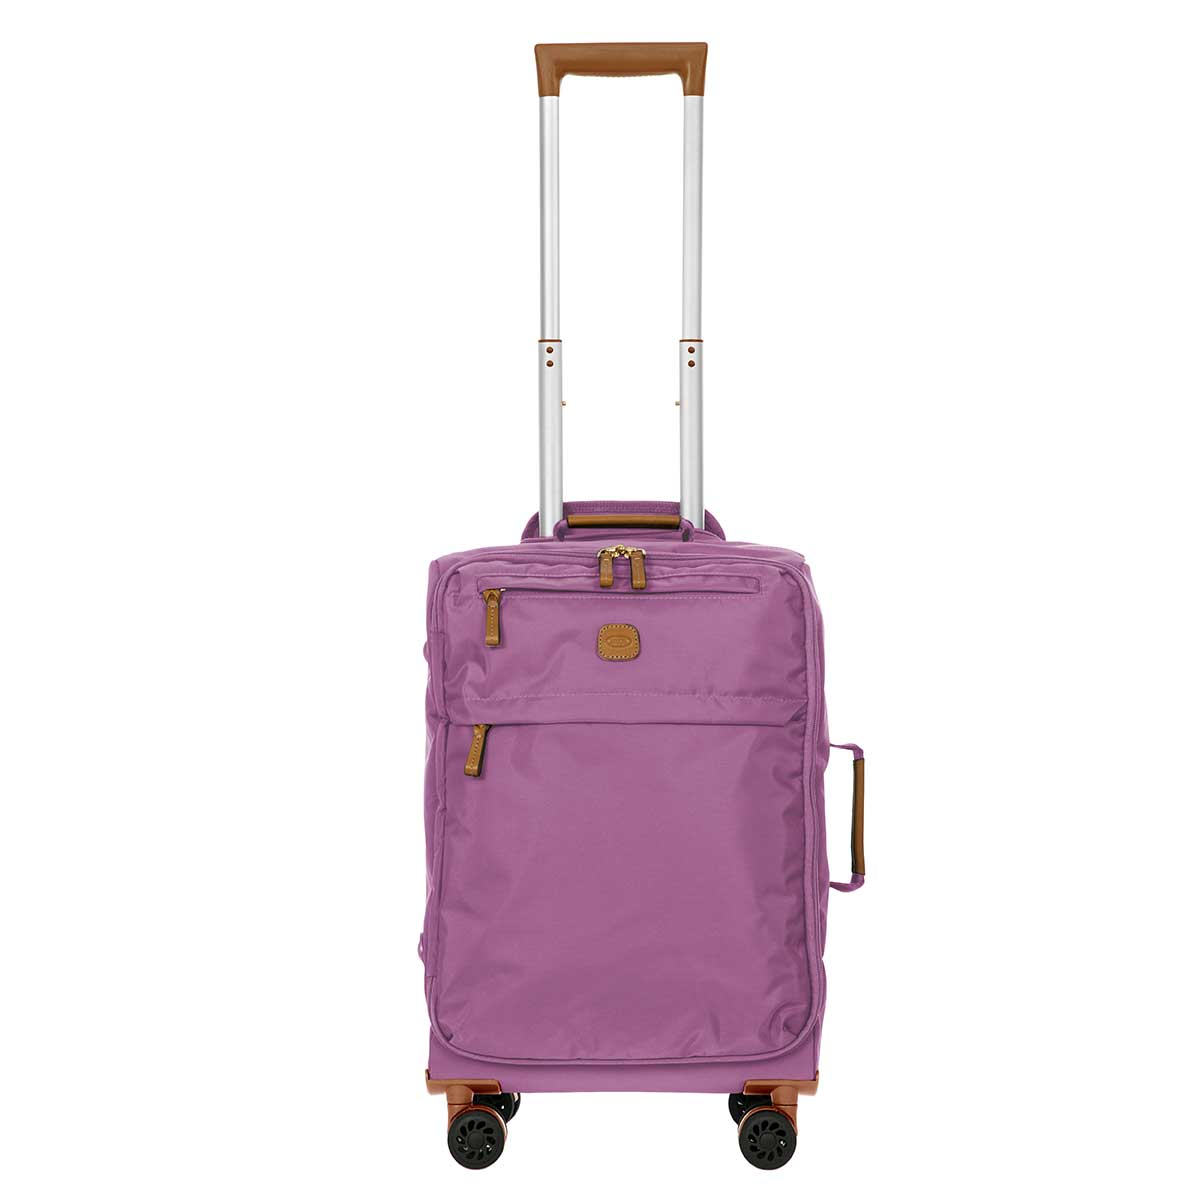 "BRIC'S X-Bag 21"" Carry-On Spinner - Wisteria 